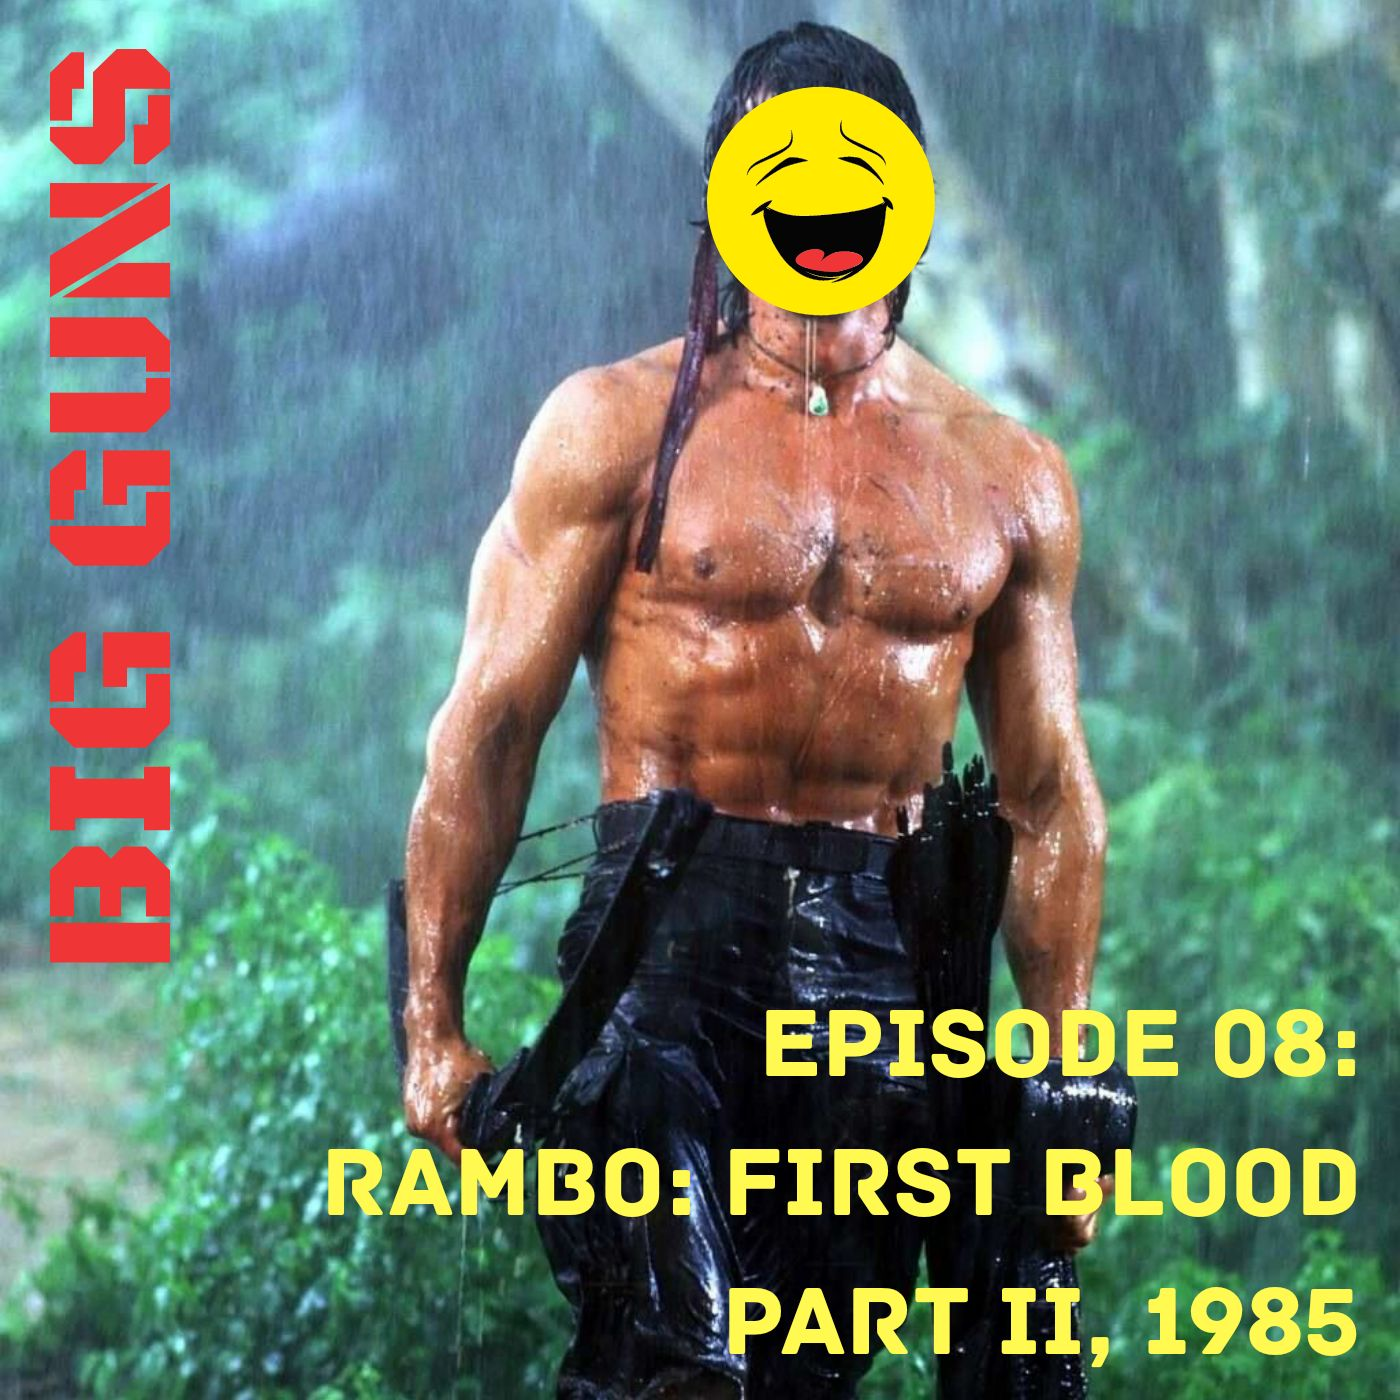 Episode 08 Rambo First Blood Part Ii 1985